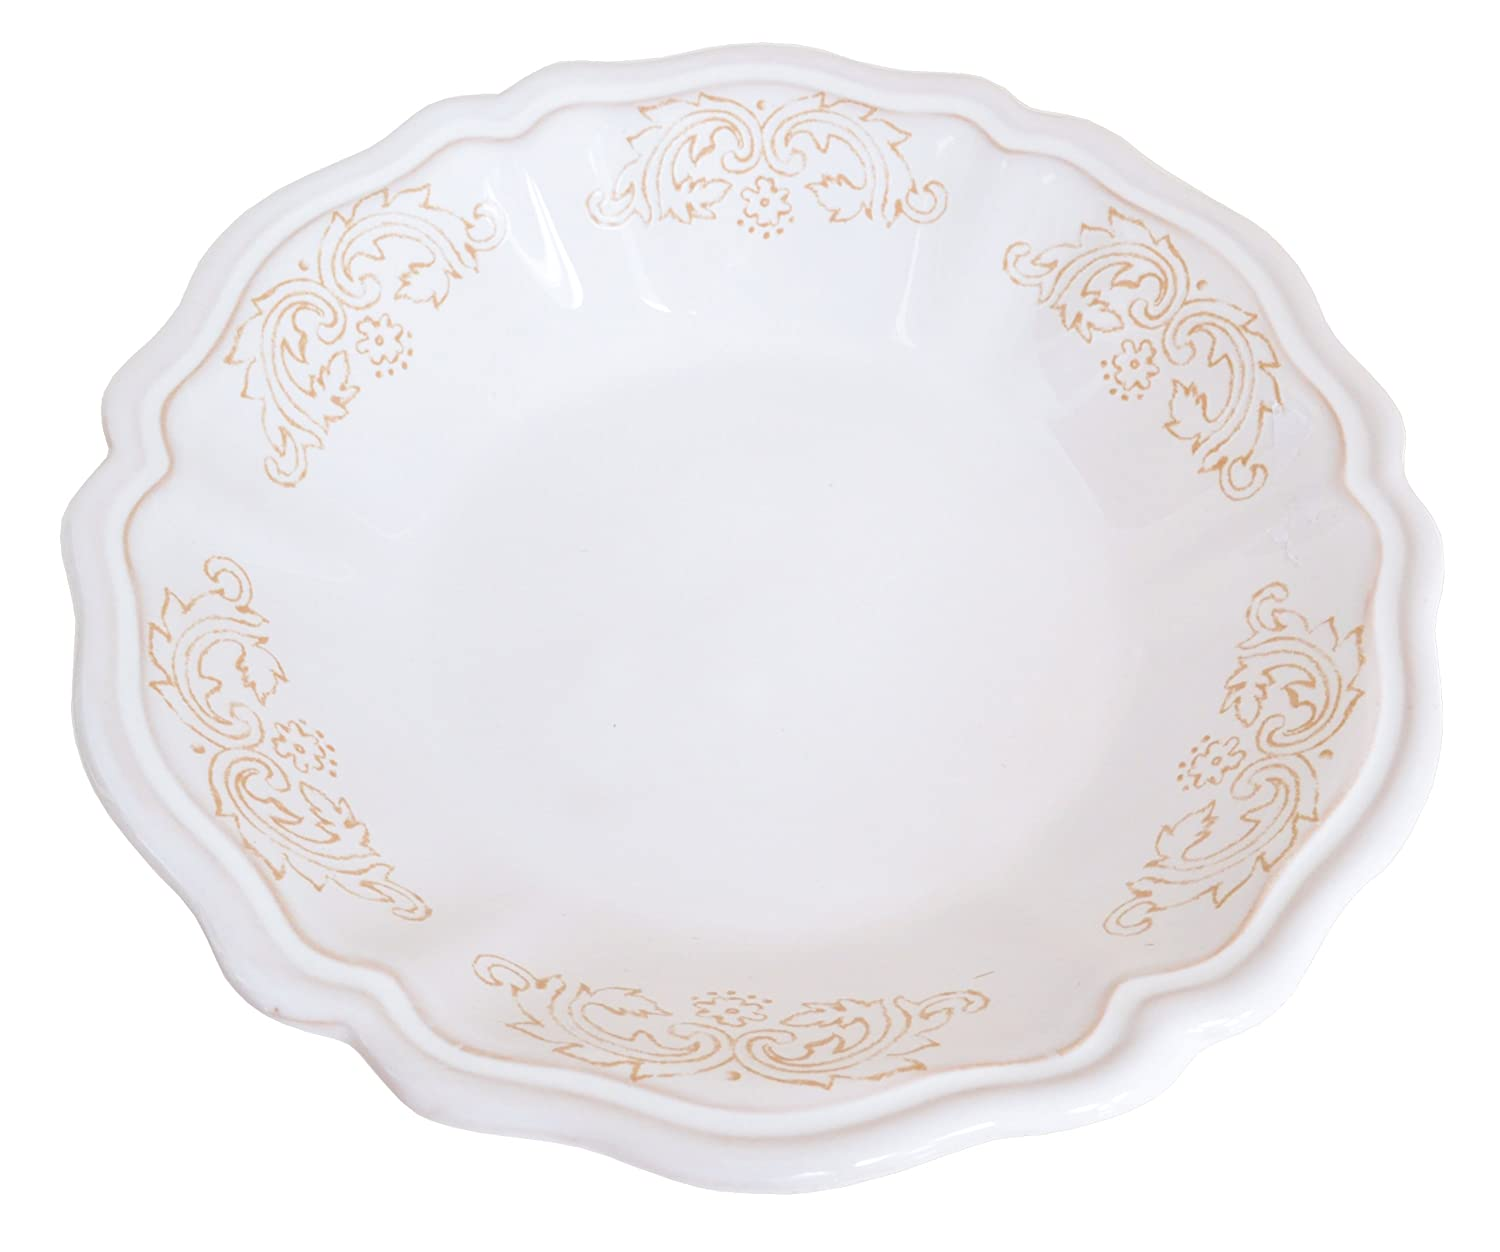 12.5-Inch by 9-Inch by 2.75-Inch Abbiamo Tutto Antica Toscana Oval Bowl